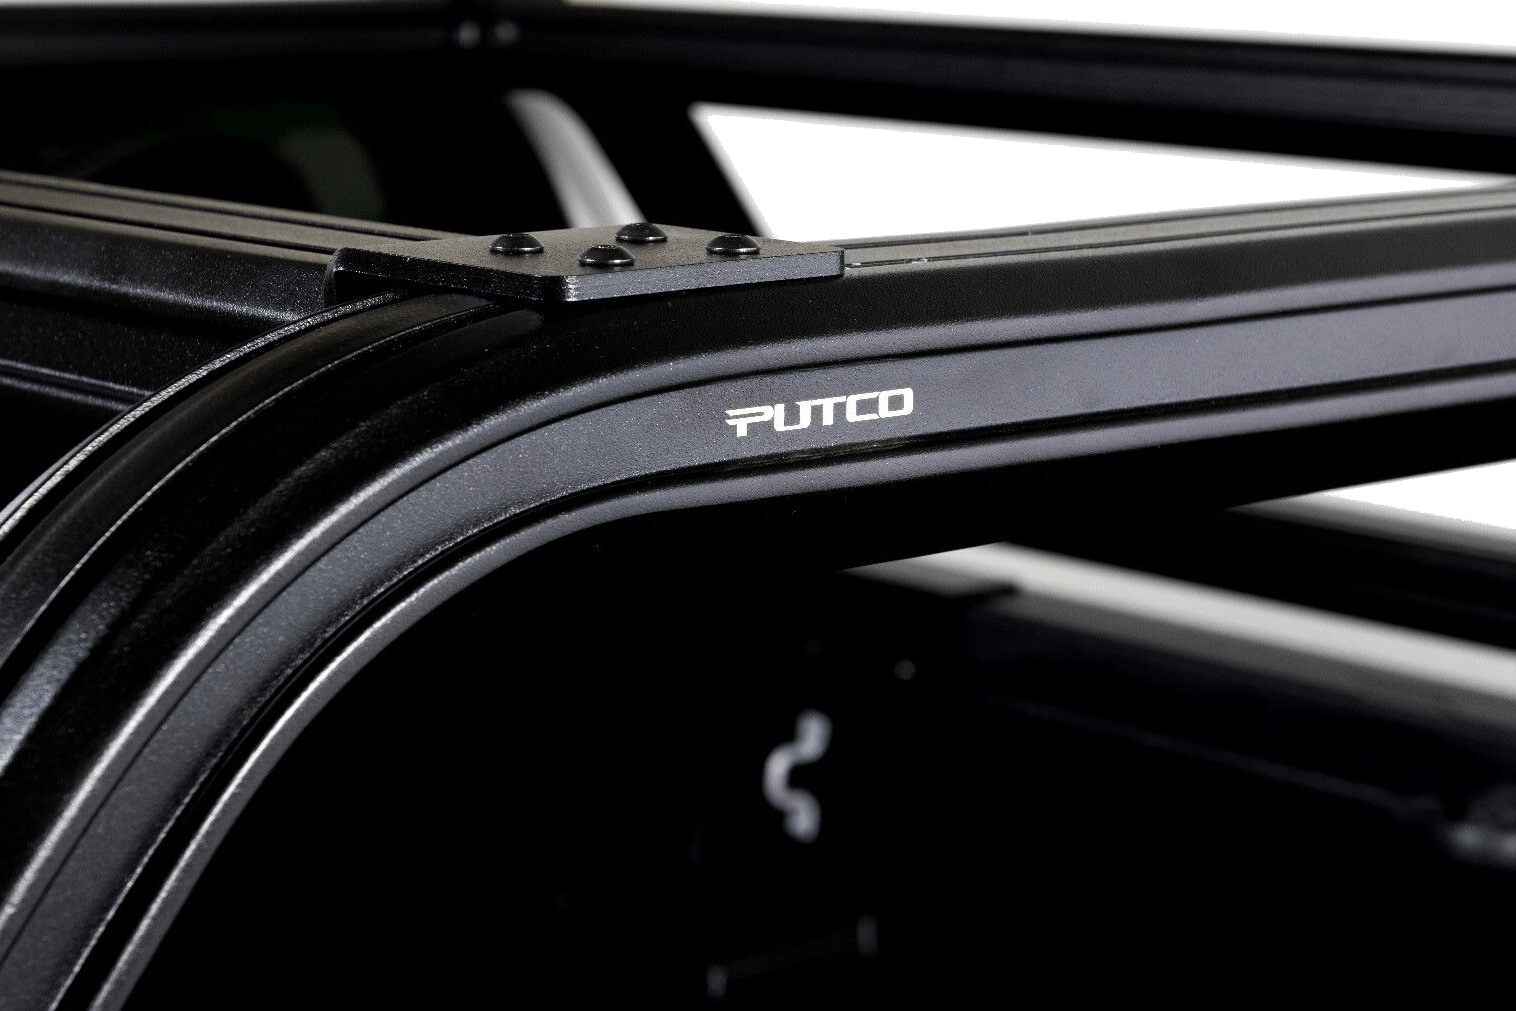 Putco overland rack close up shot.